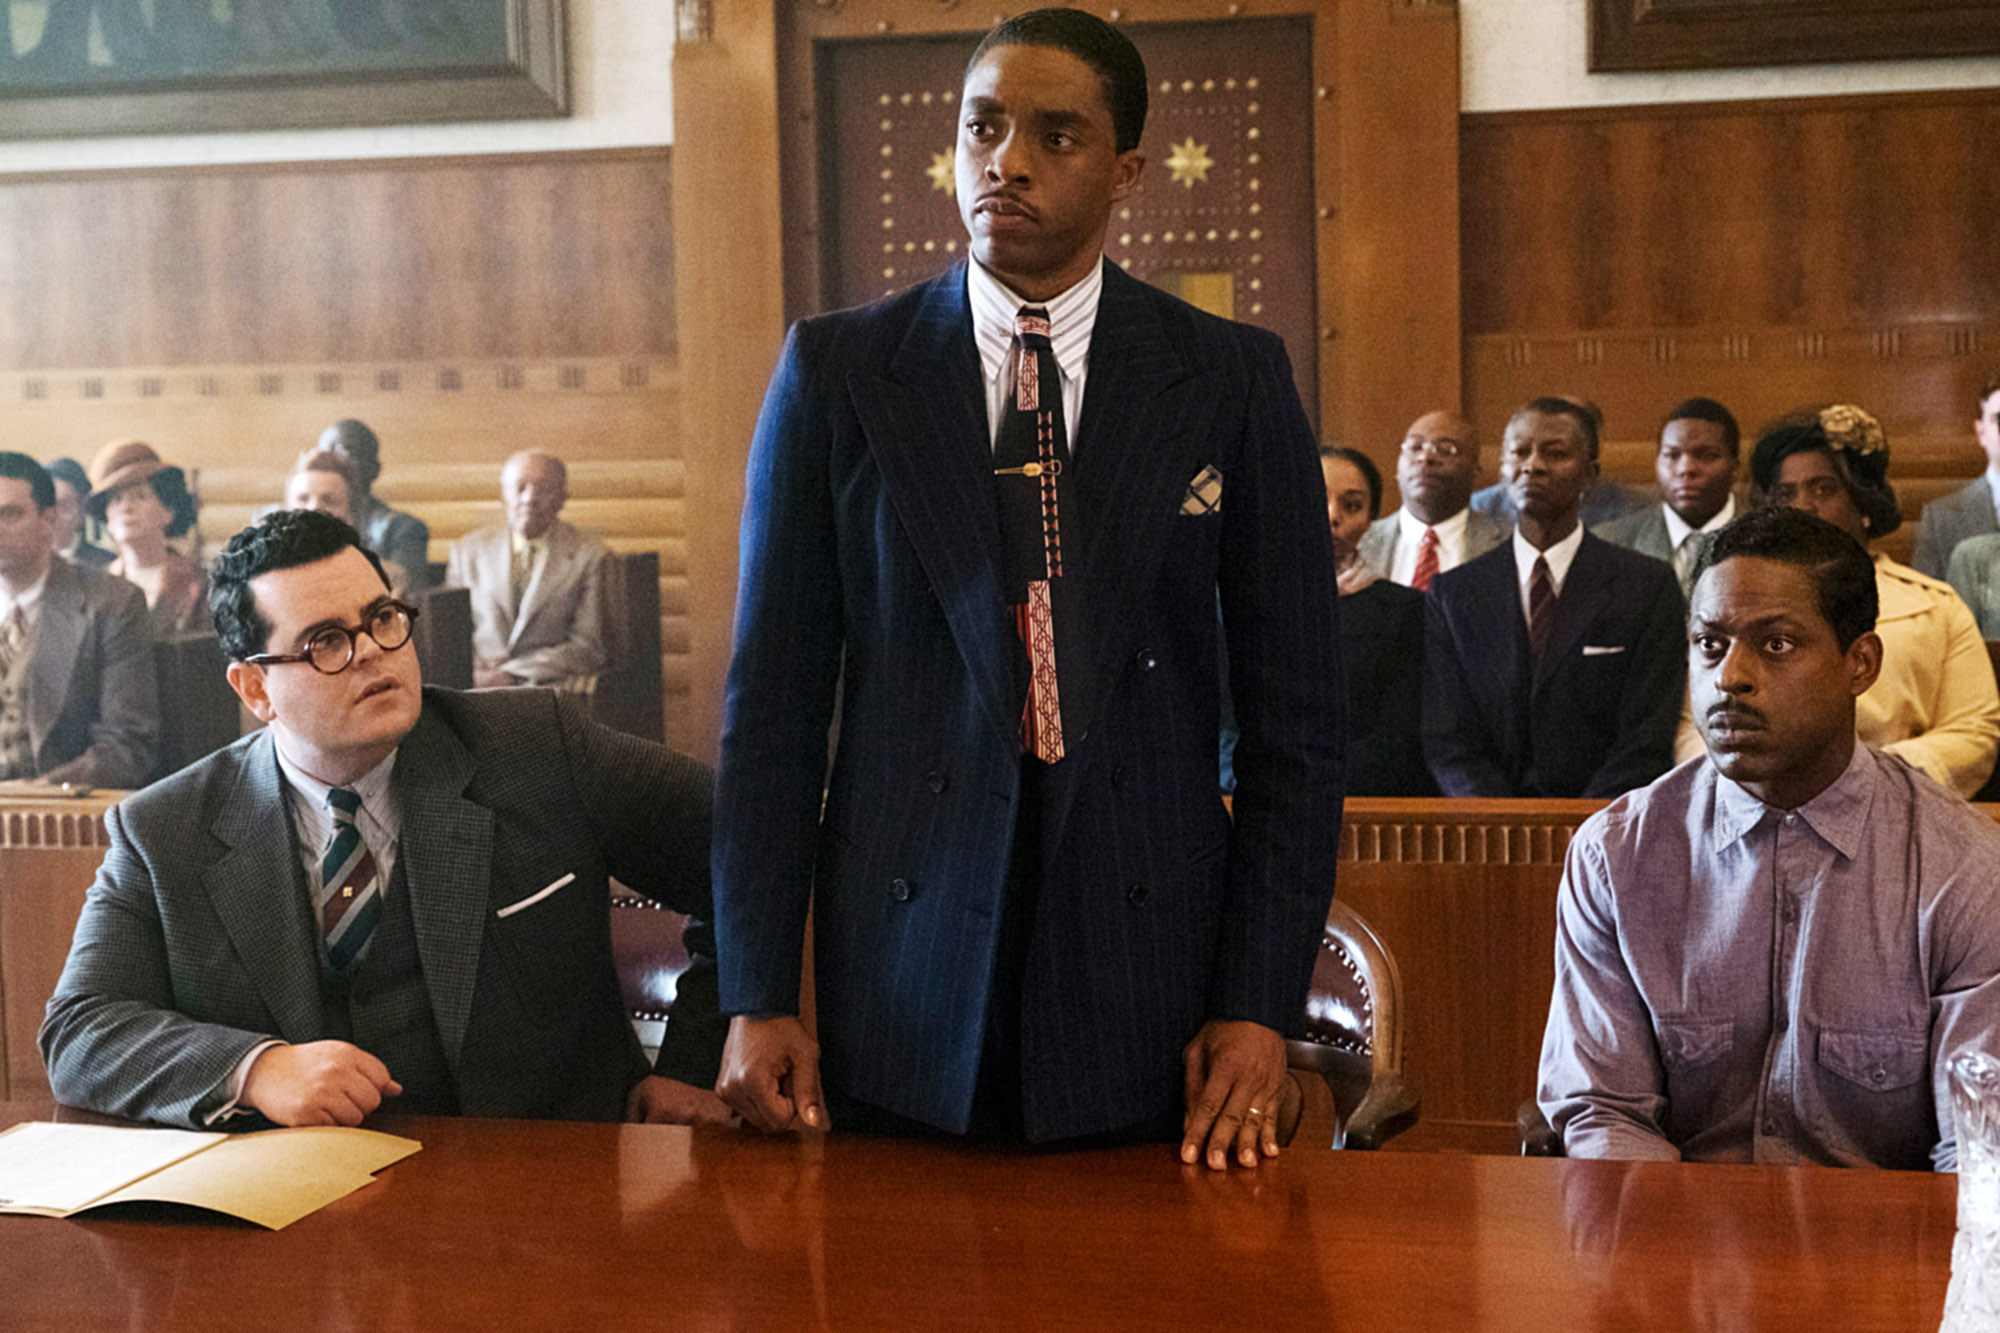 Chadwick Boseman as Thurgood Marshall standing in a courtroom between Josh Gad and Sterling K. Brown